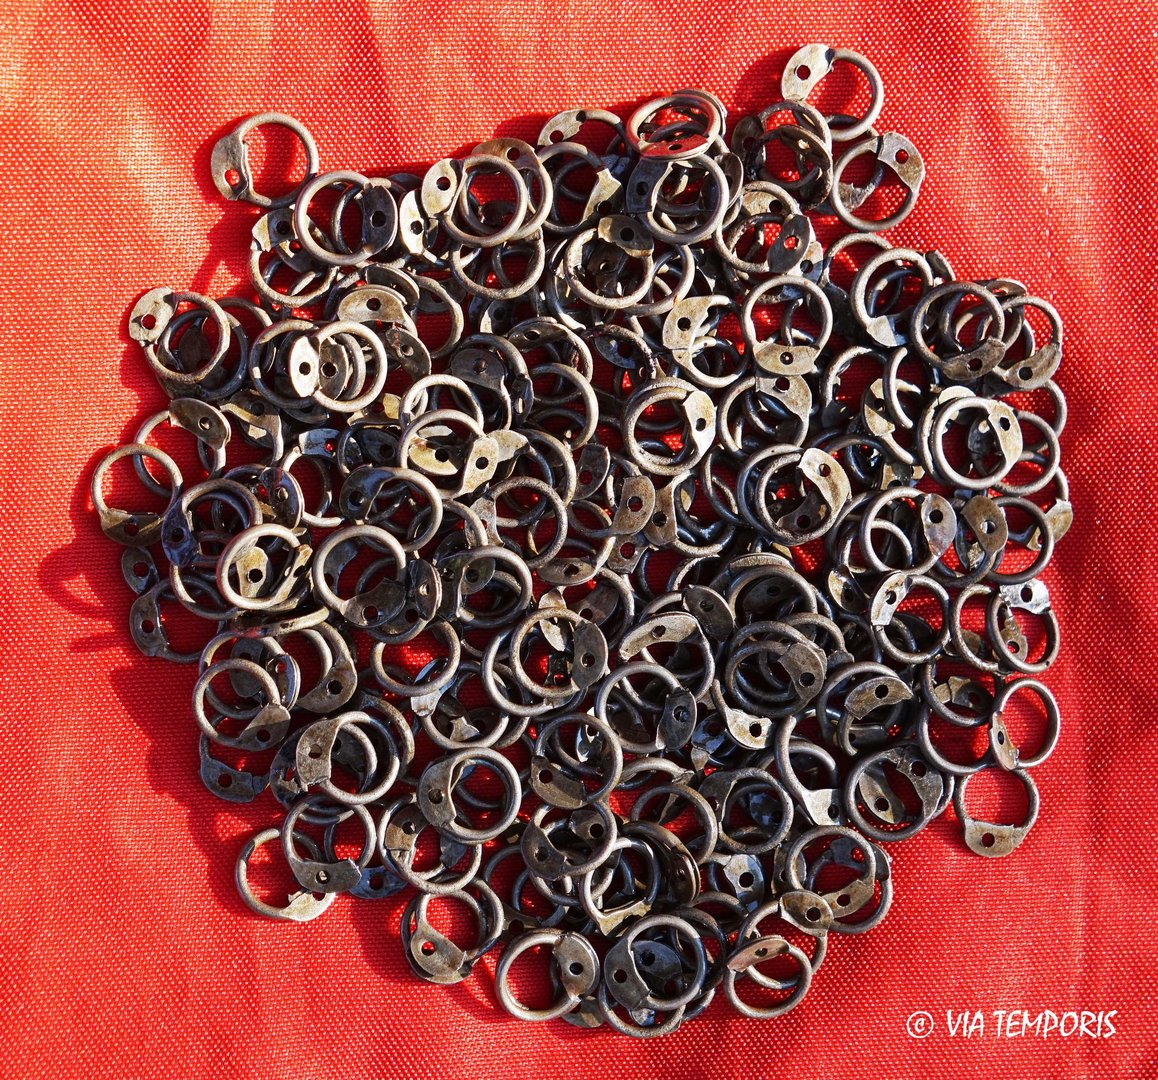 RINGS 6 MM ROUND RIVETING FOR LORICA HAMATA (250 g.)